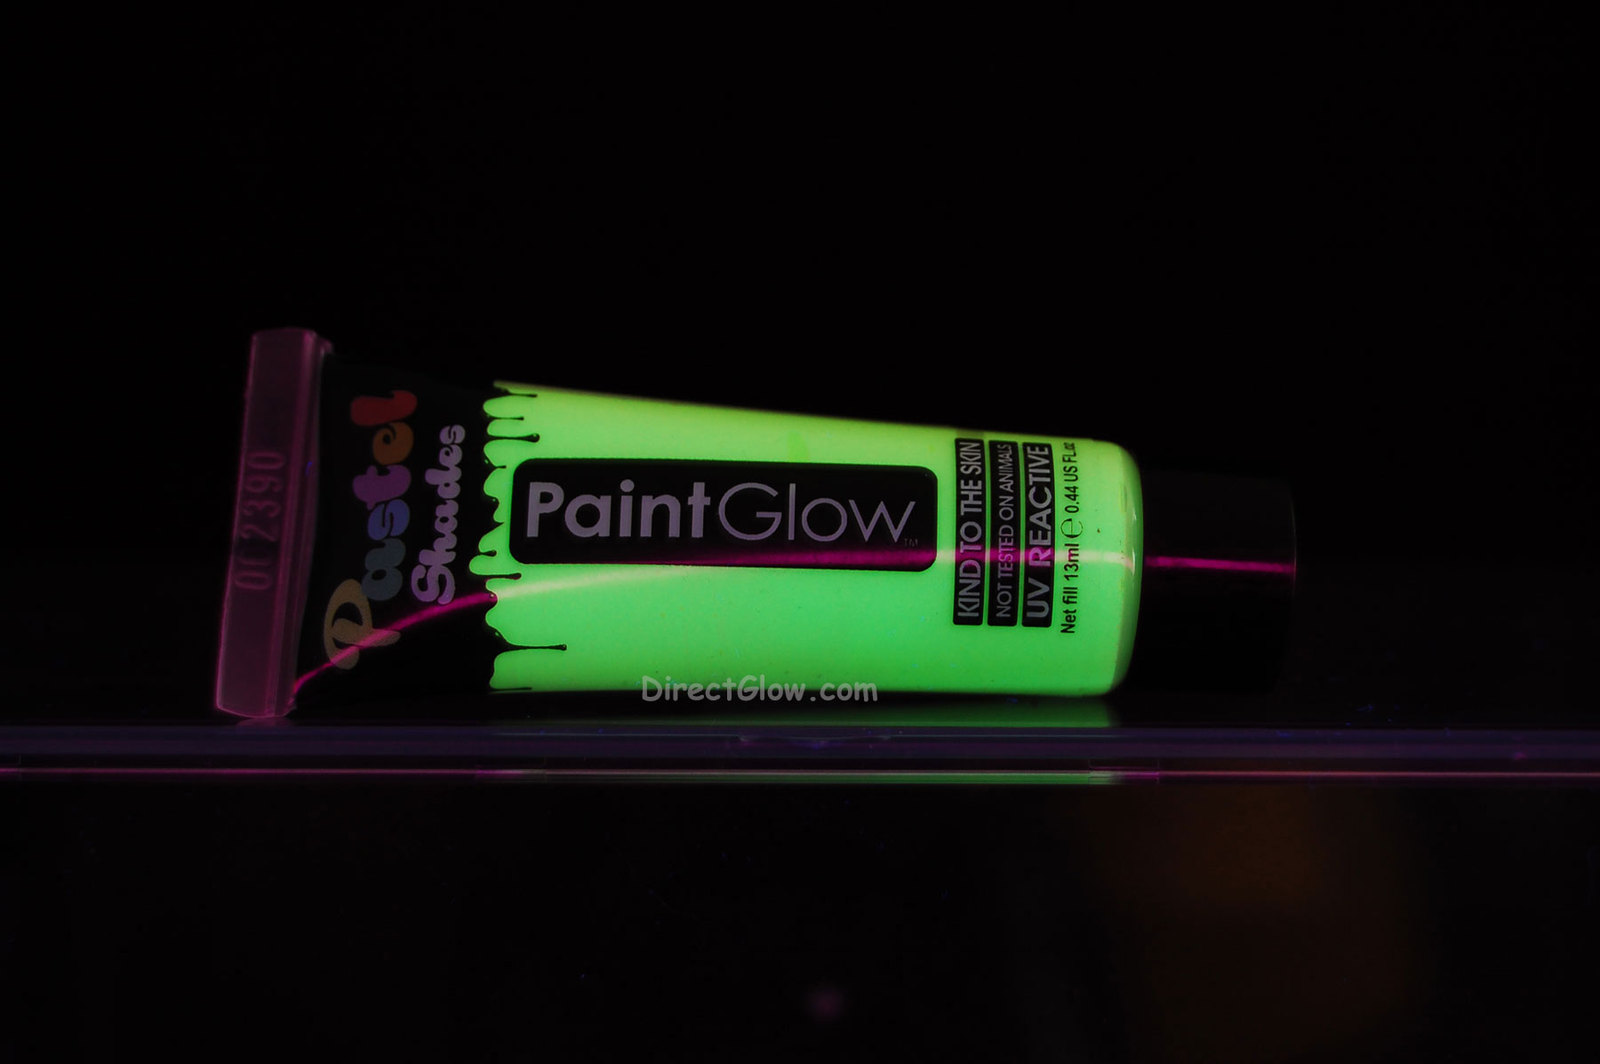 PaintGlow .44oz Pastel Green Blacklight Reactive Face and Body Paint - $5.95